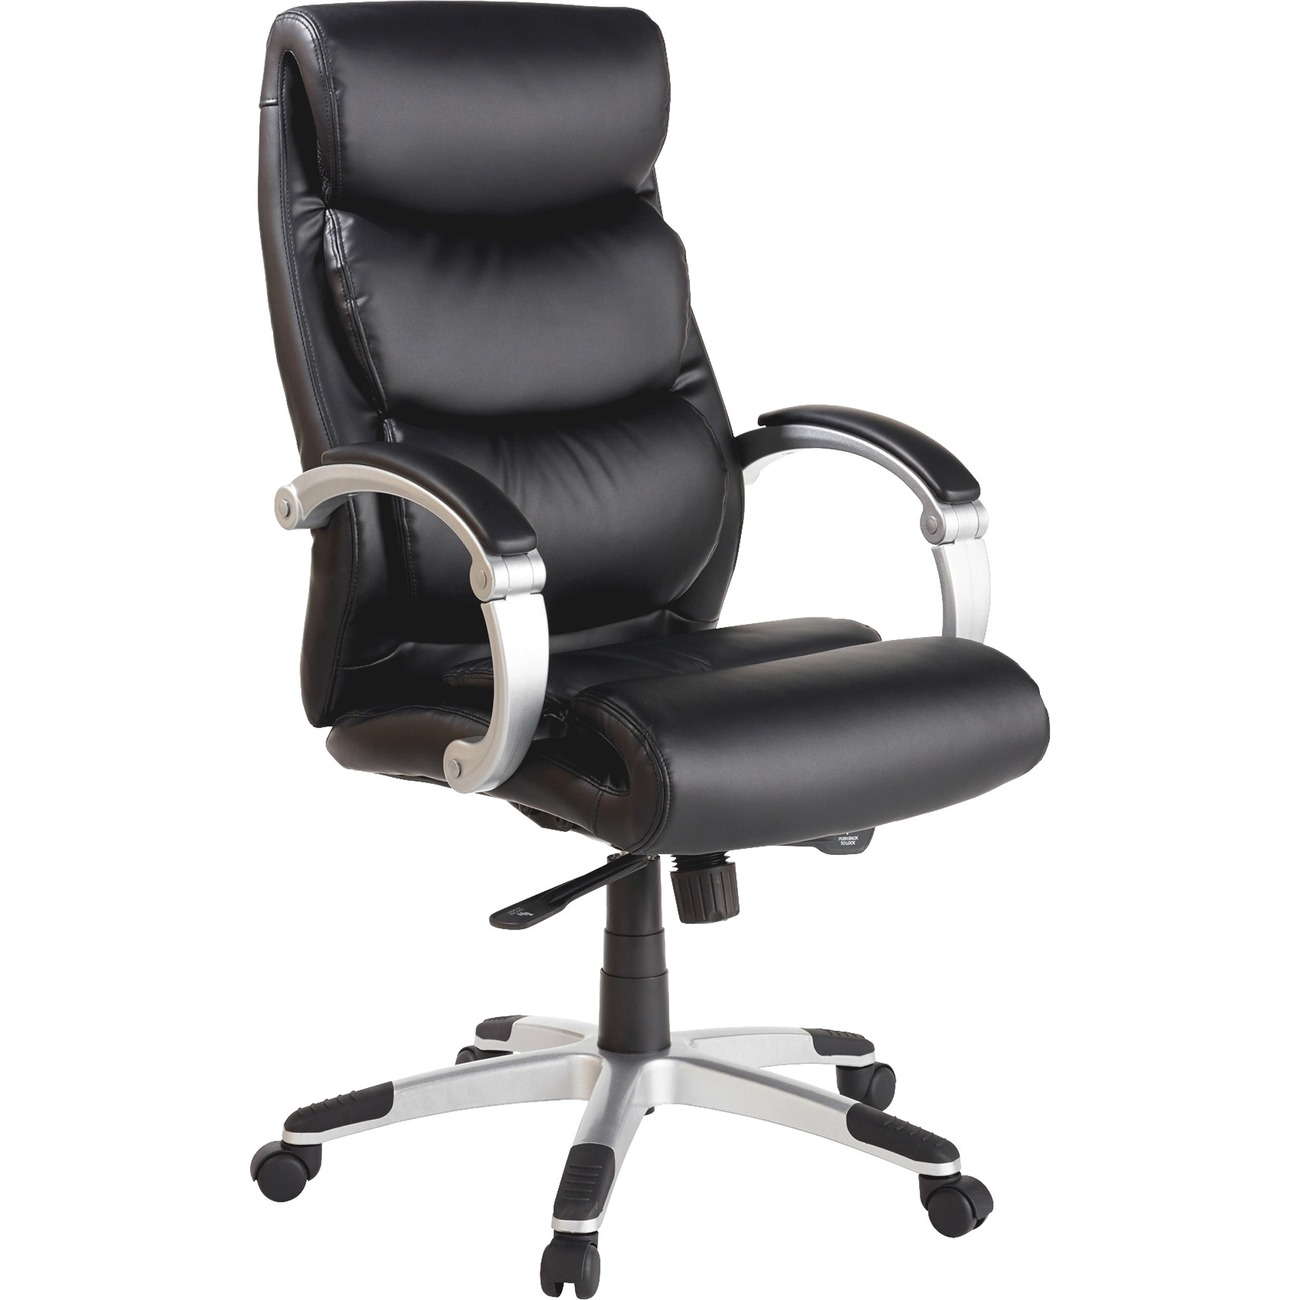 executive chair accessories gym aliexpress west coast office supplies furniture chairs